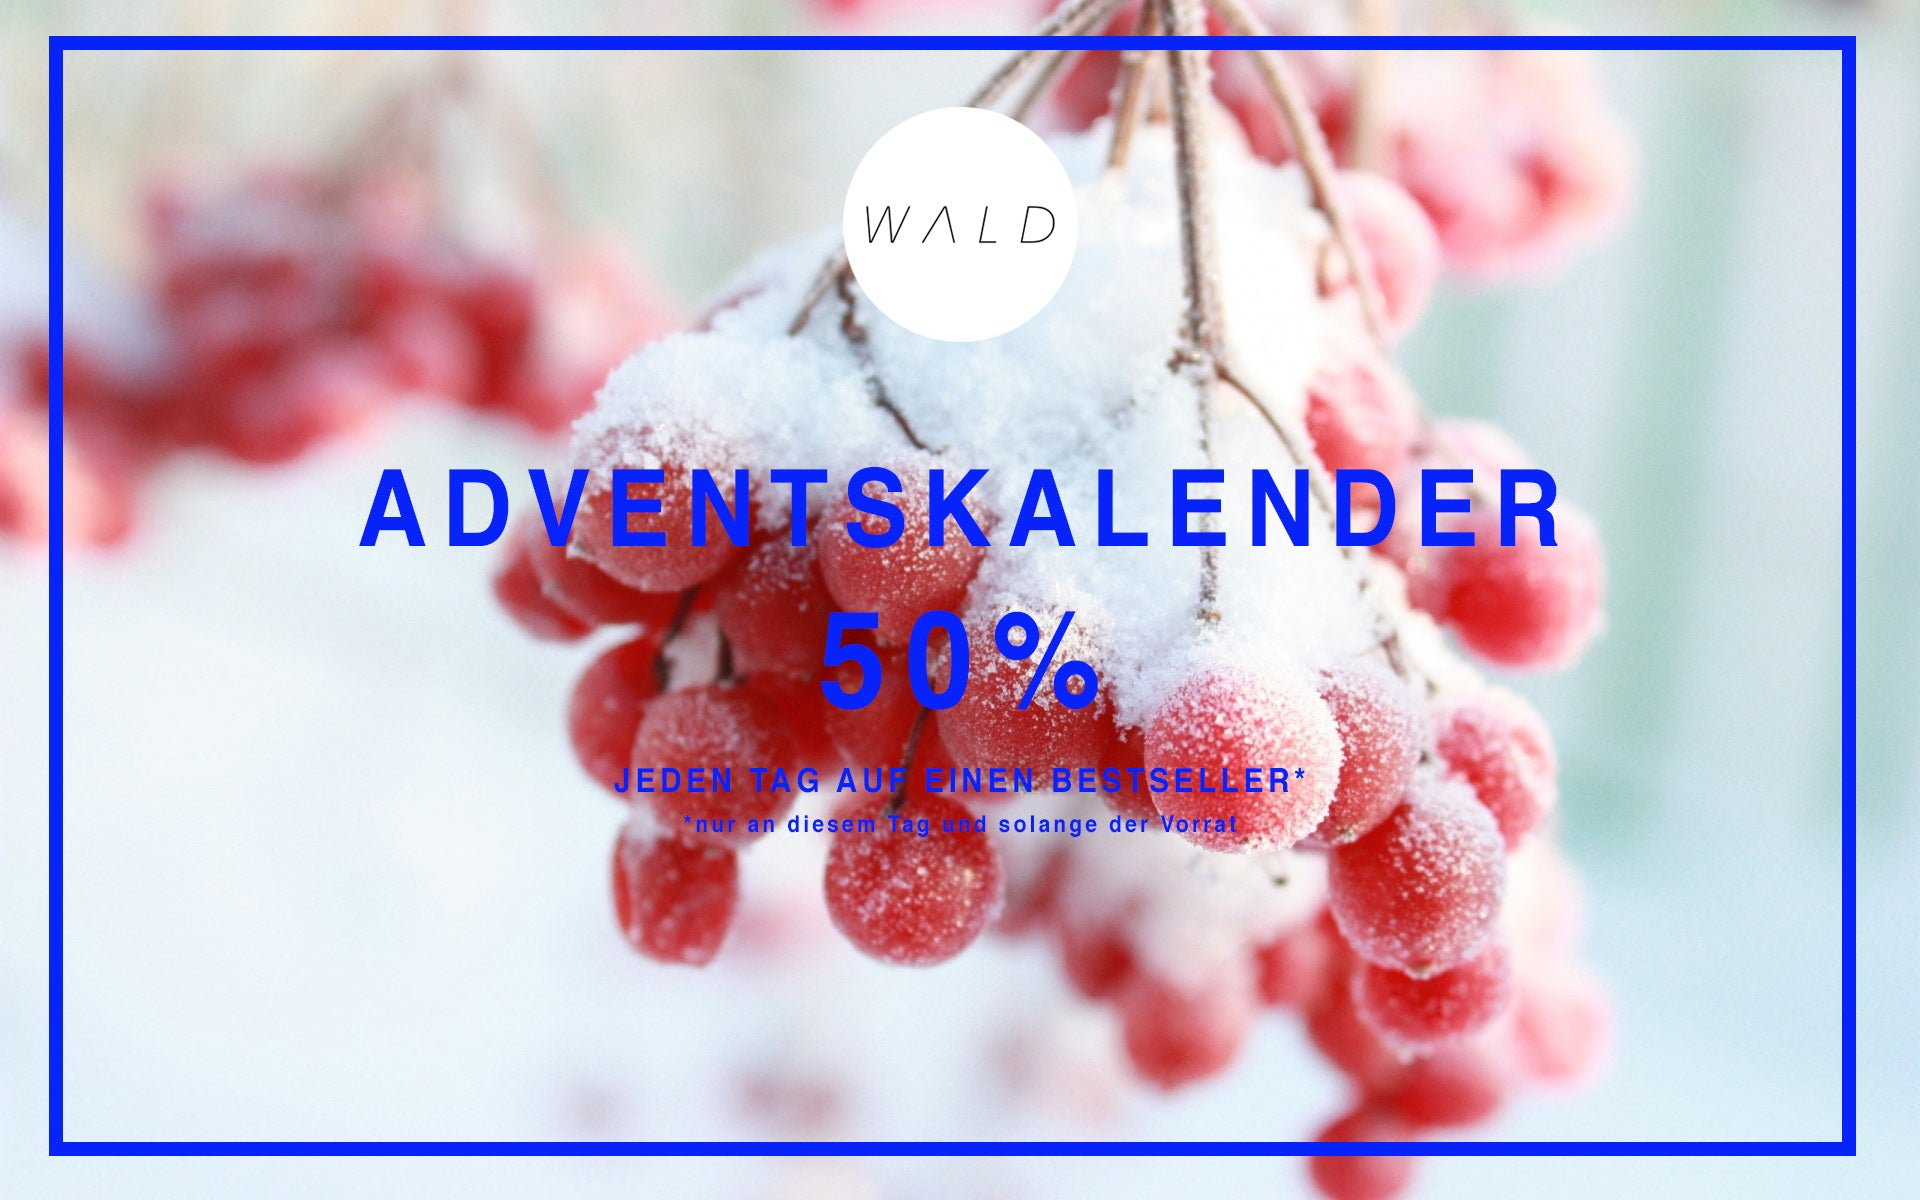 WALD Adventskalender